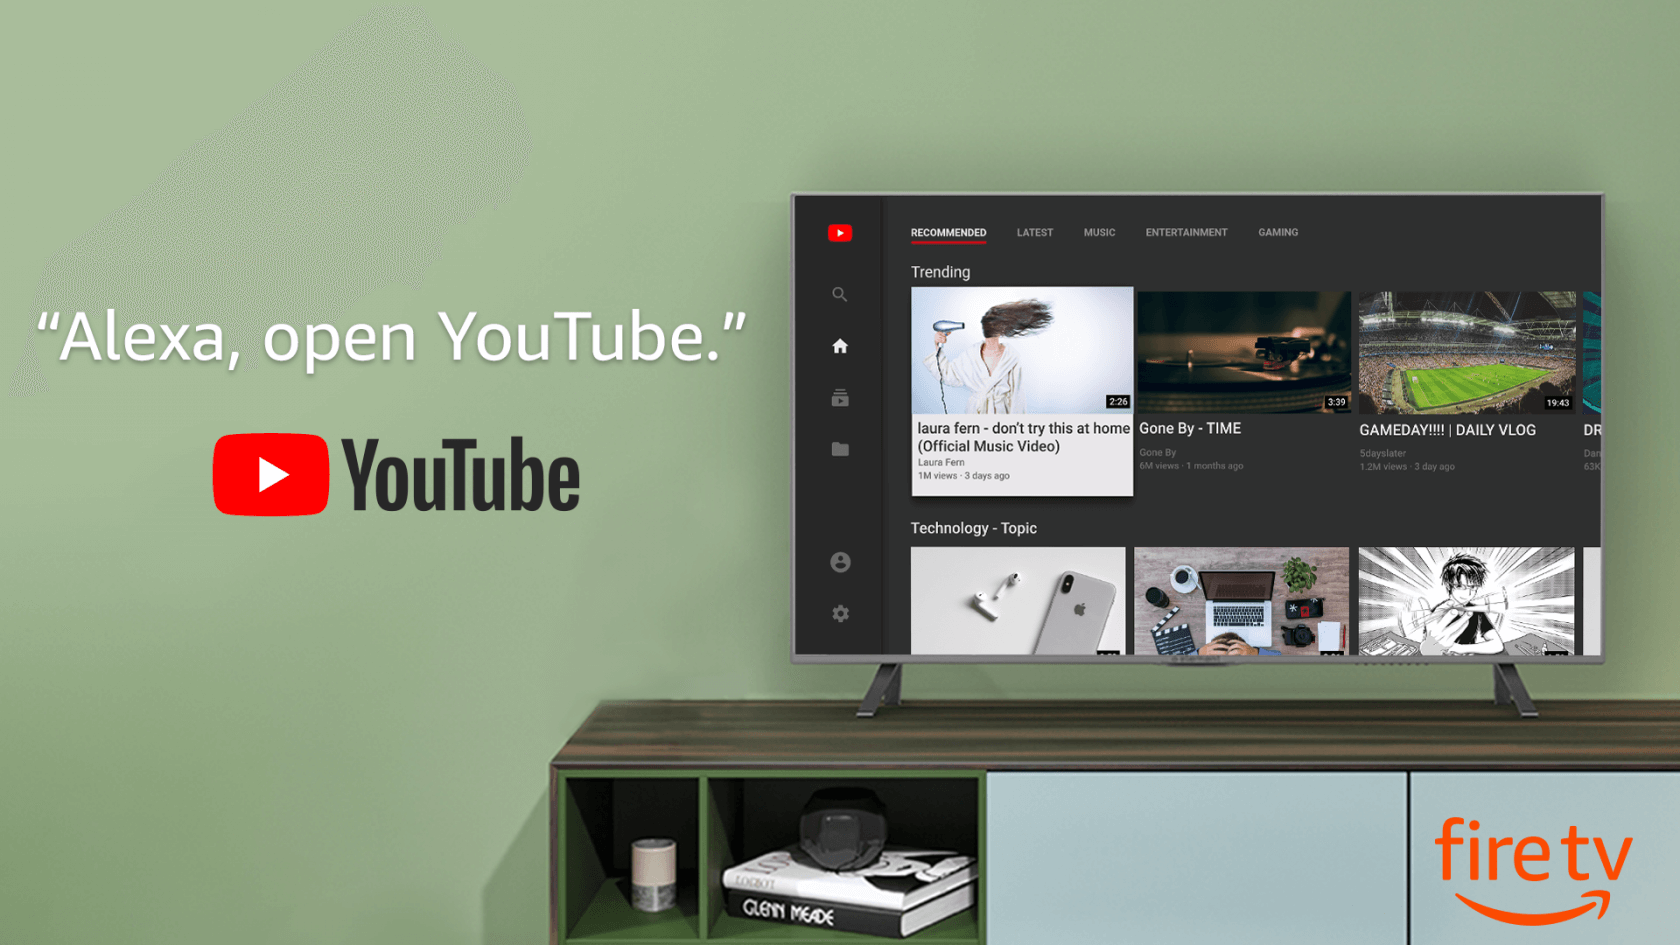 The official YouTube app has finally returned to Amazon Fire TV